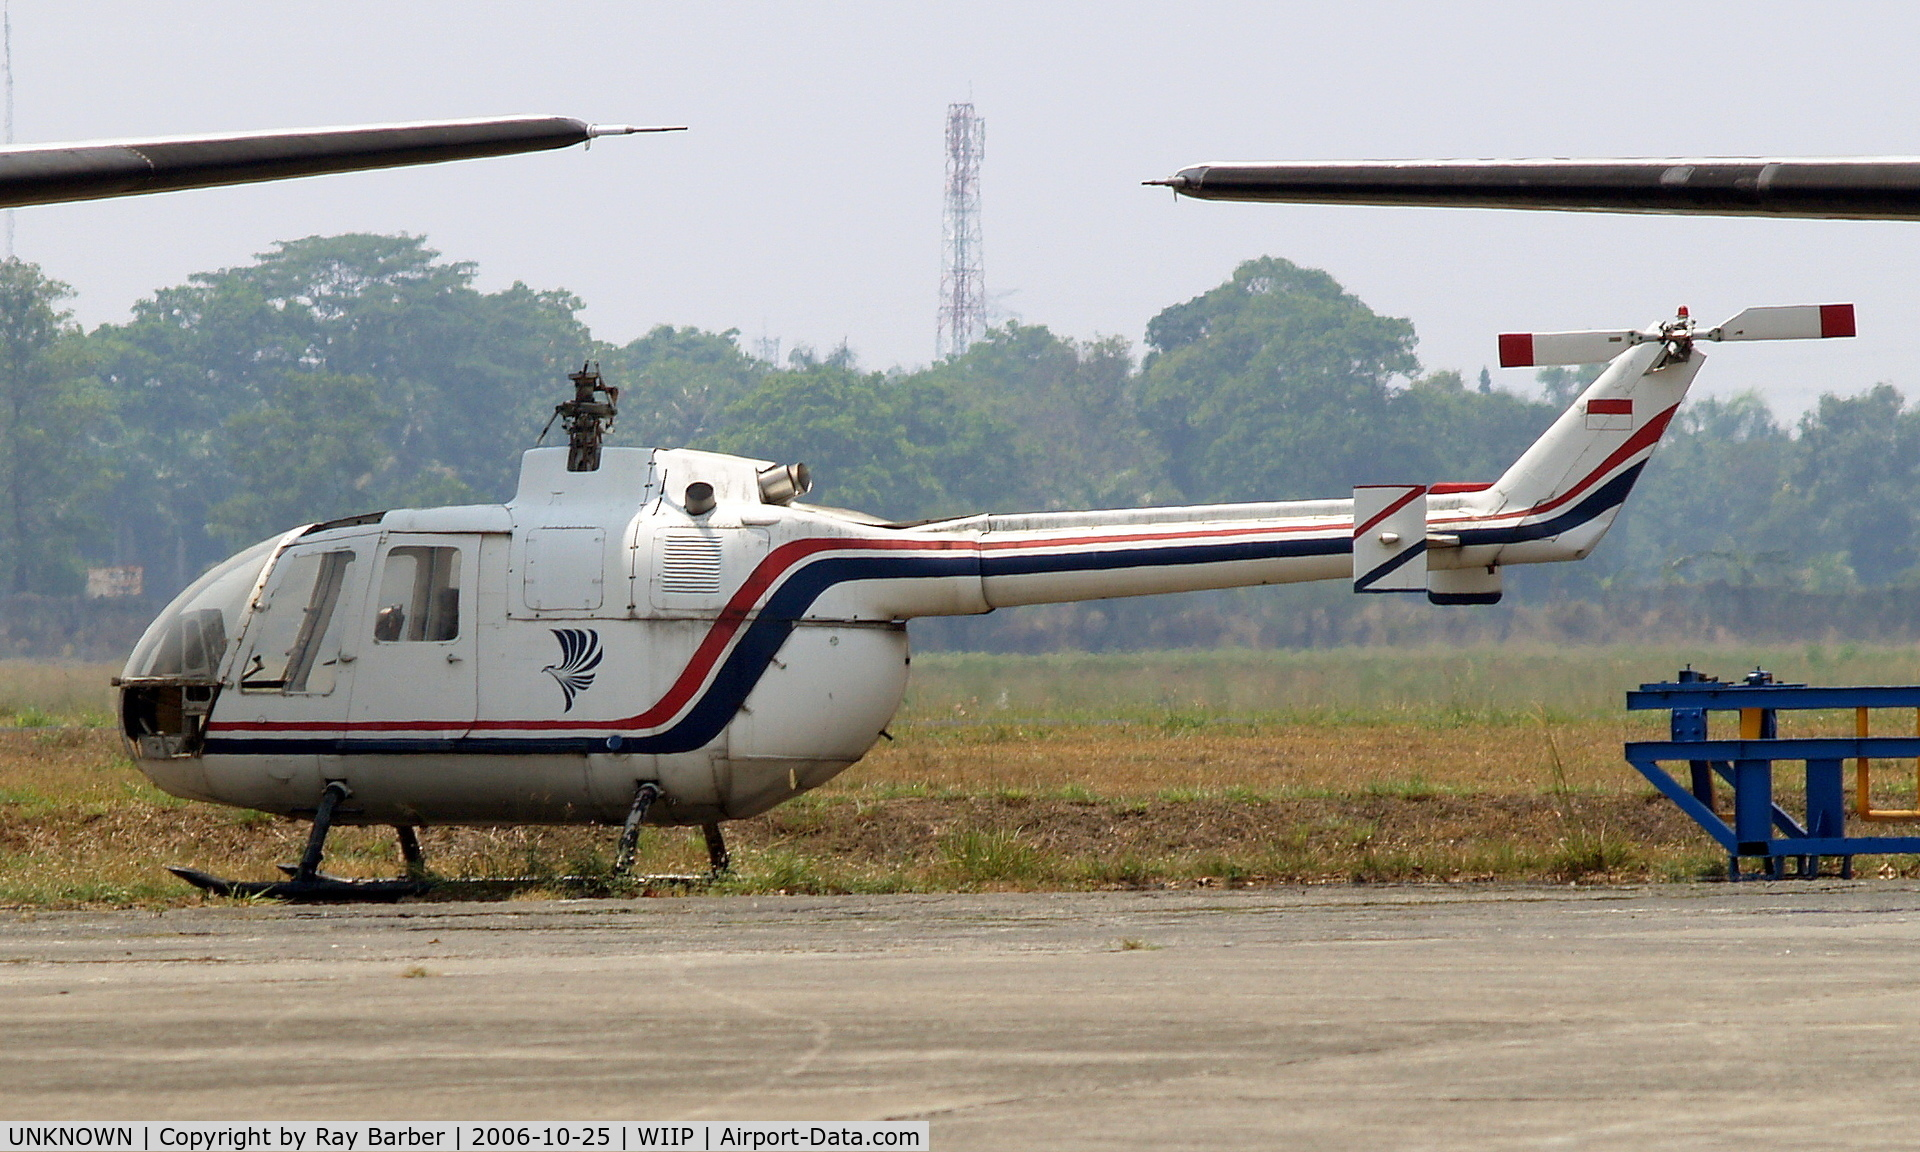 UNKNOWN, Helicopters Various C/N unknown, Un-identified Helicopter Pondok Cabe~PK 25/10/2006 (WIIP)